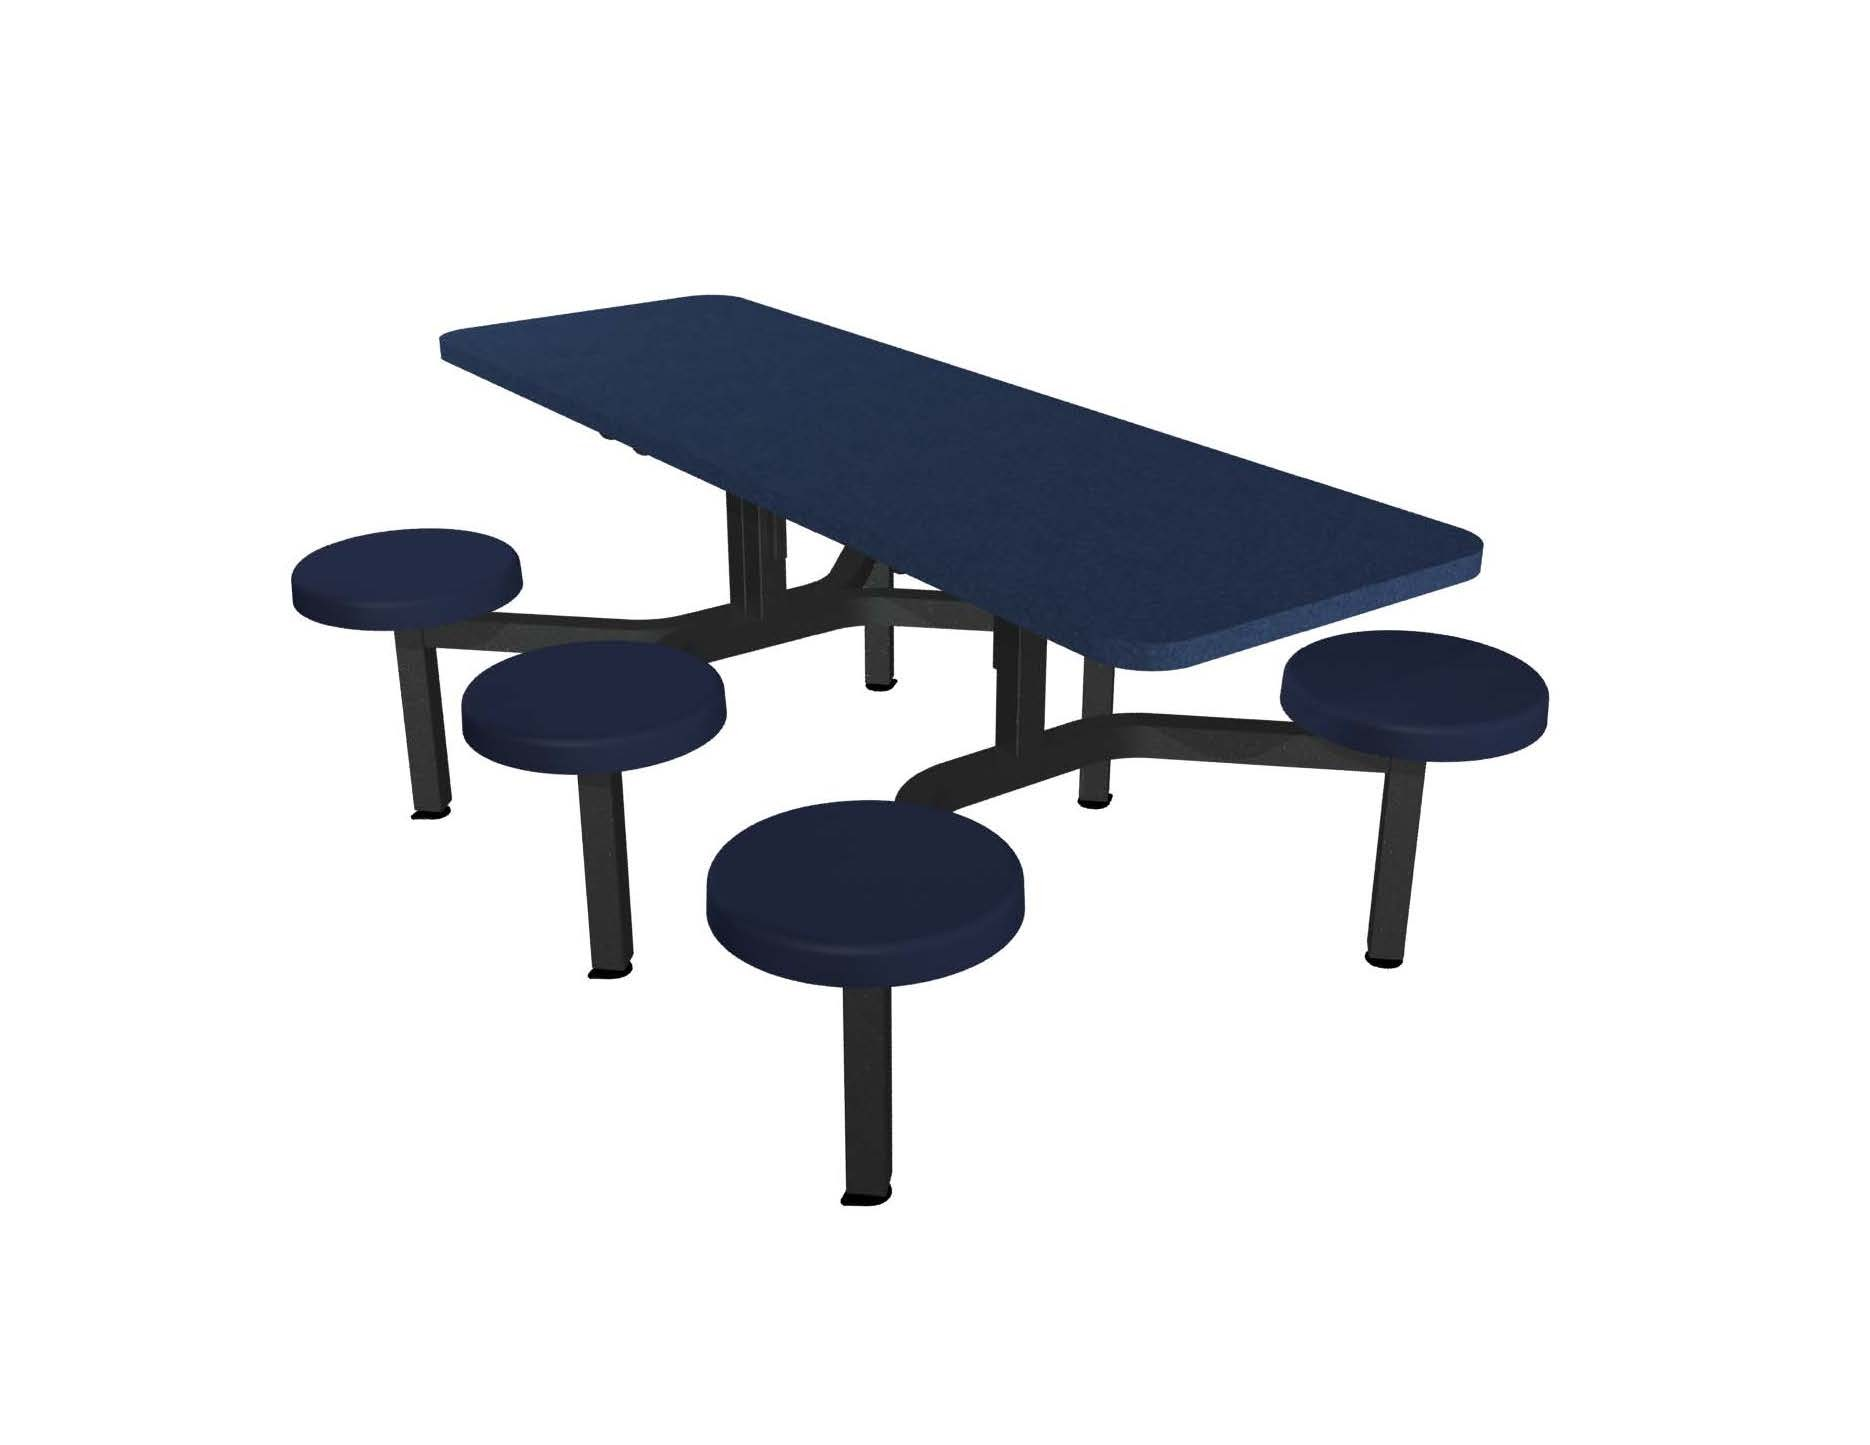 Navy Legacy laminate table top and edge, Composite button seat in Navy